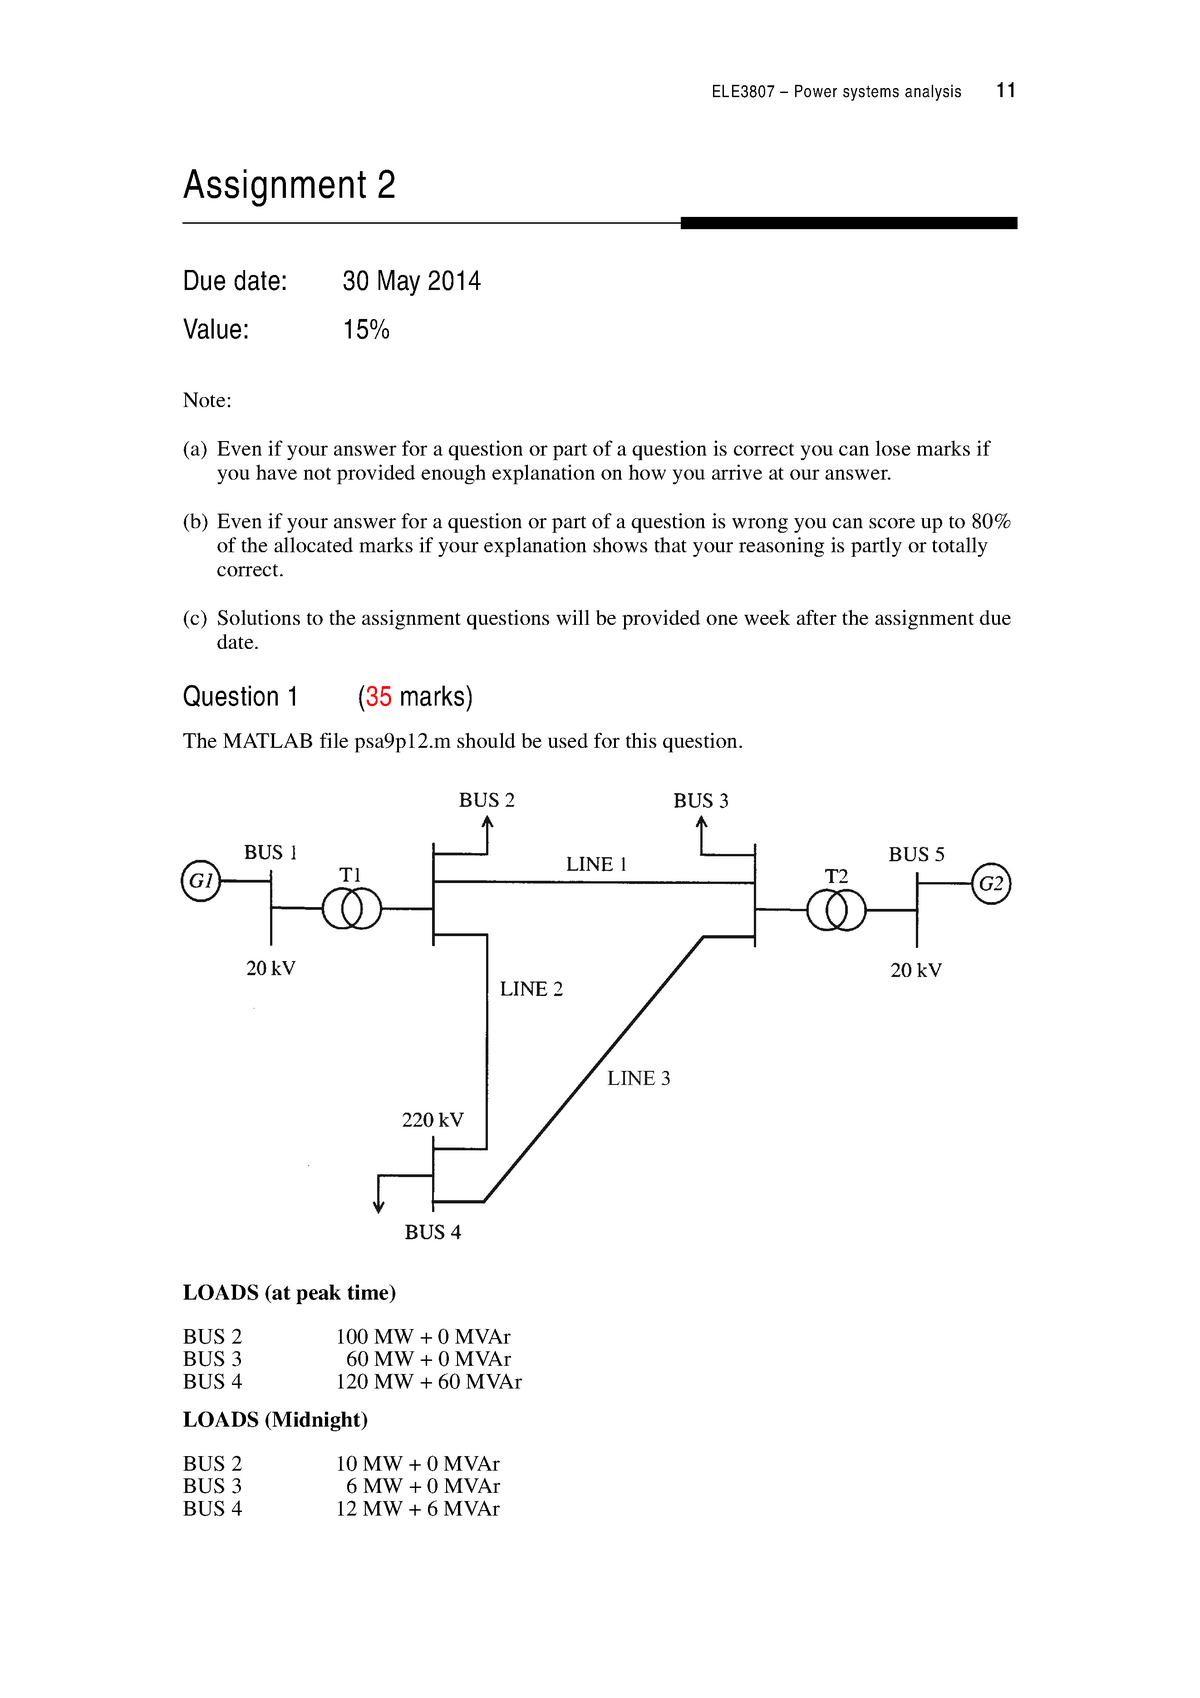 ELE3807 Assignment 2 2014 - ELE3807: Power Systems Analysis